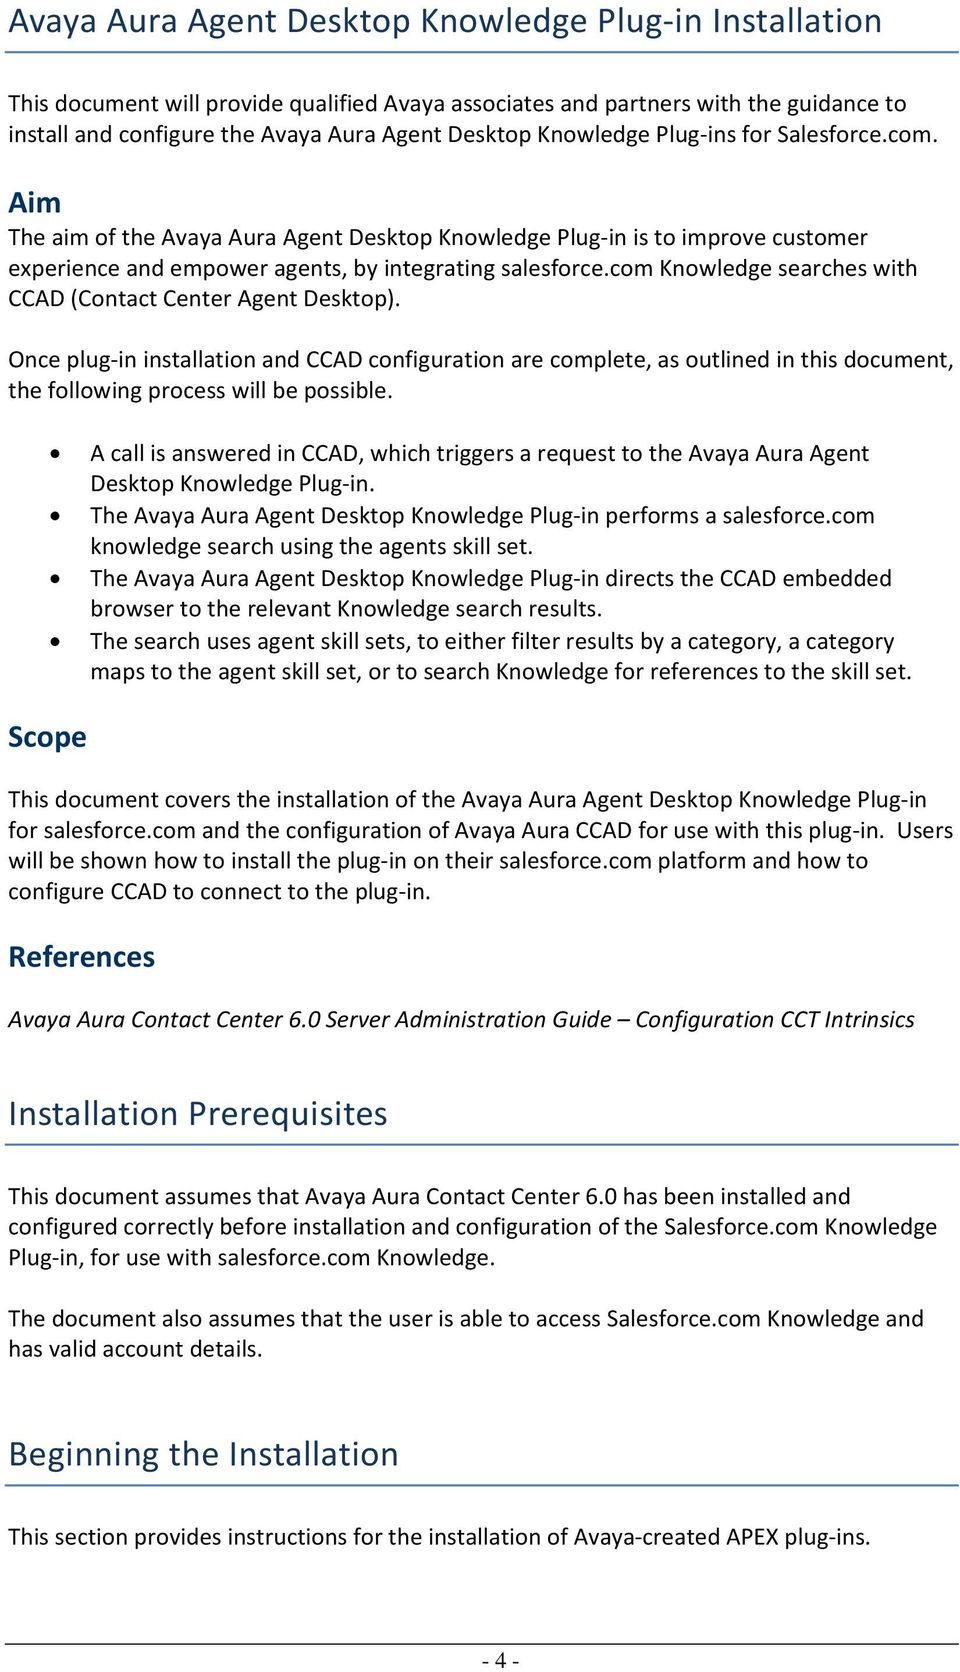 com Knowledge searches with CCAD (Contact Center Agent Desktop). Once plug in installation and CCAD configuration are complete, as outlined in this document, the following process will be possible.